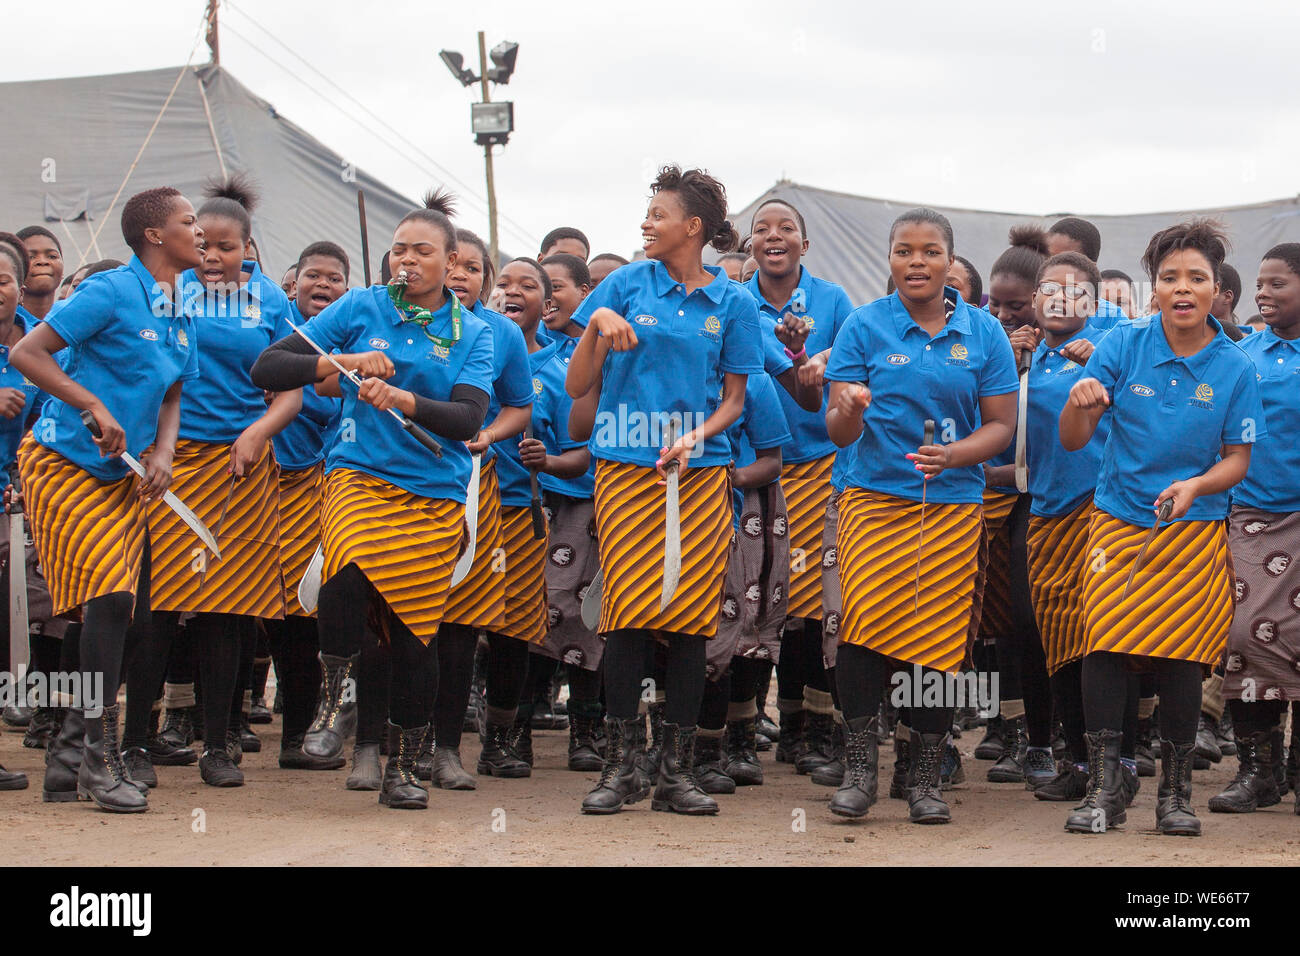 Mbabane, Swaziland - August 31, 2017: Umhlanga Reed Dance ceremony traditional rite young virgin girls with big knives machete go to field to cut reed Stock Photo